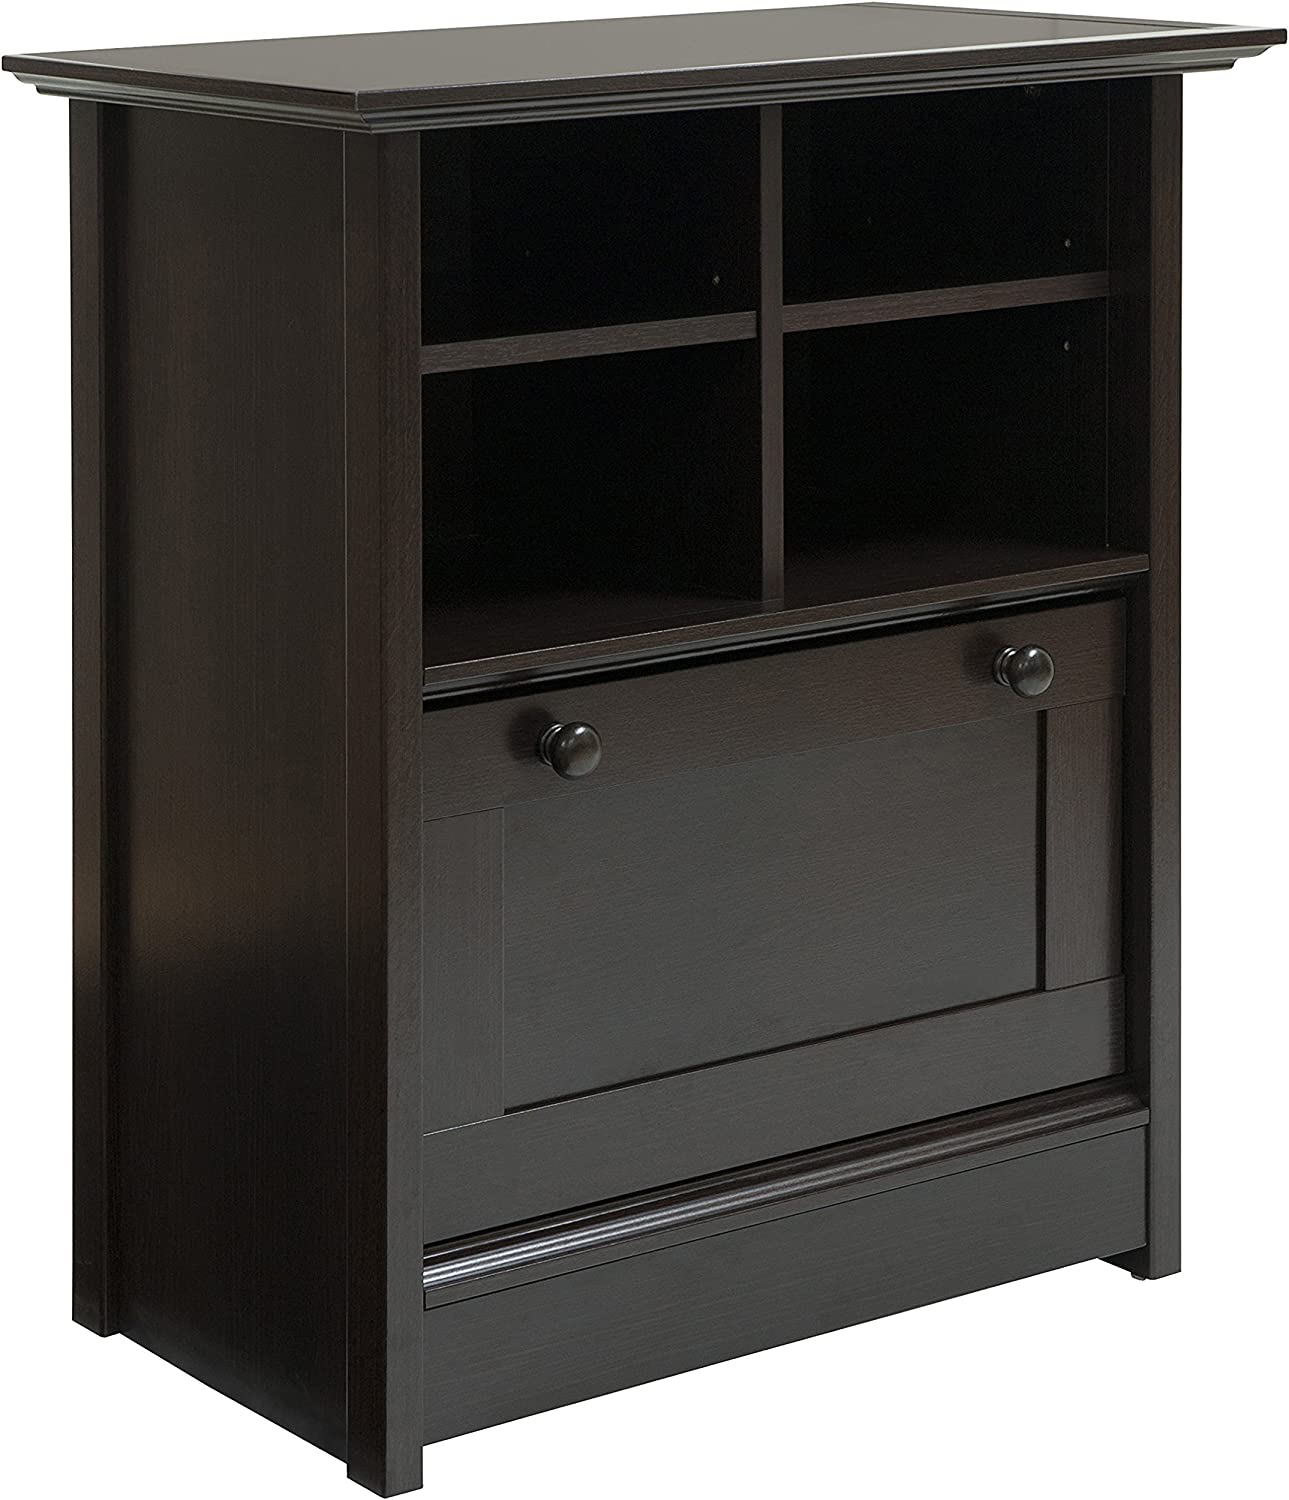 Comfort Products Coublo Collection File Cabinet, Mocha Brown